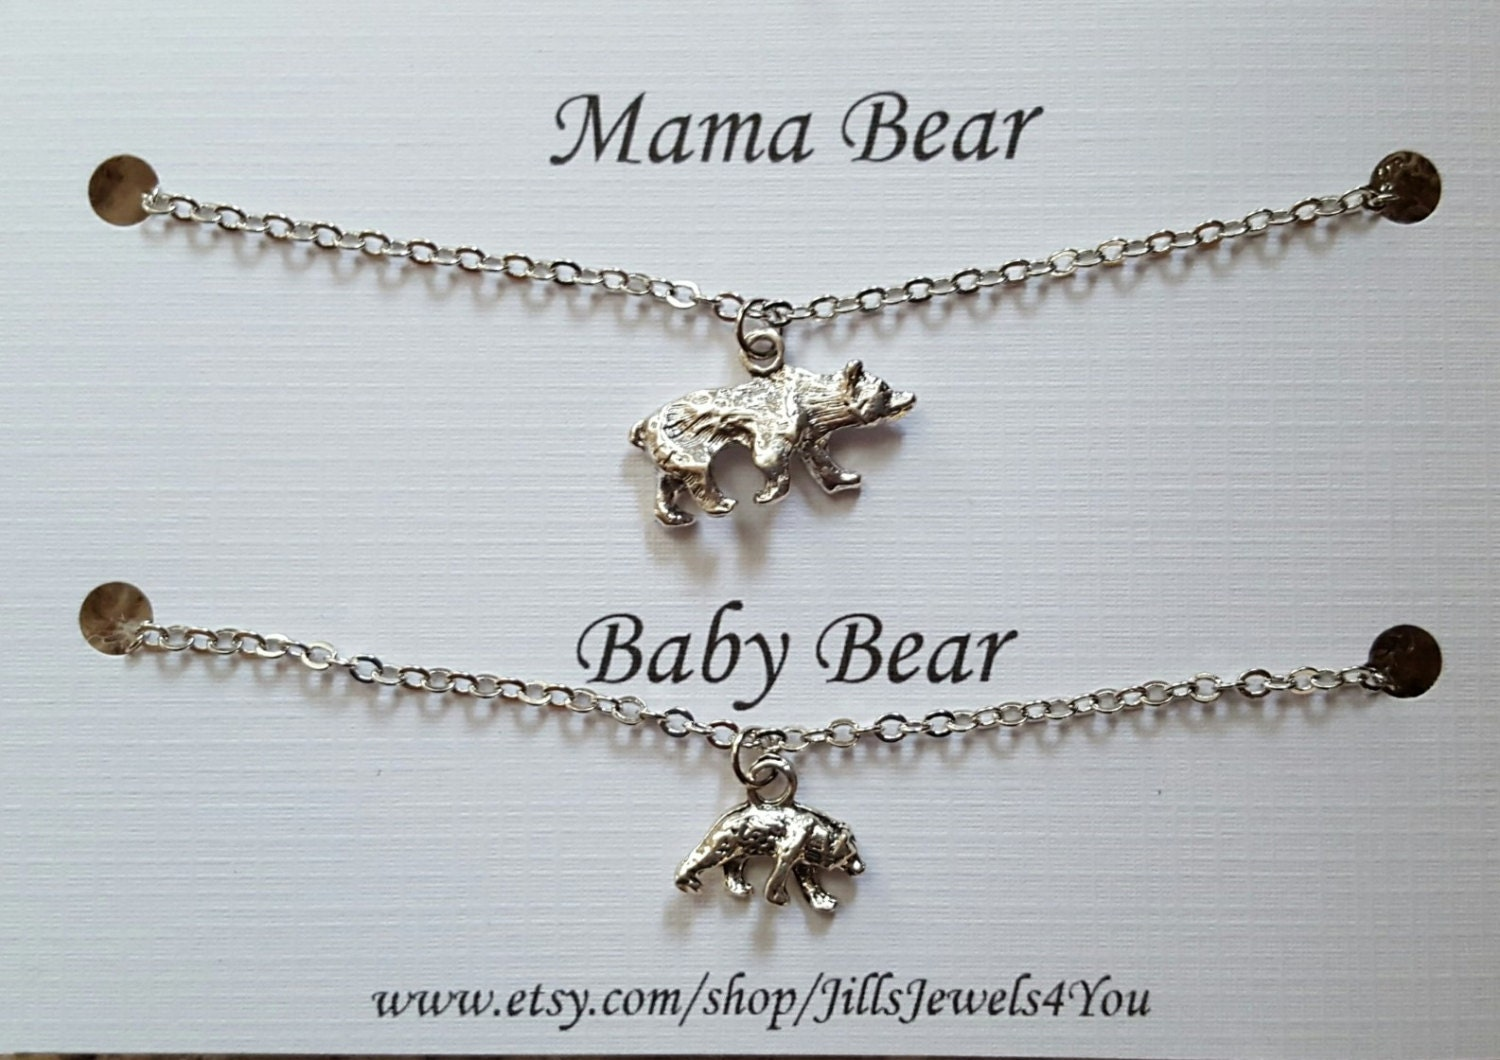 birthstone jewelry and bear birthstones steel stainless names name engraved necklace necklaces eg with mama